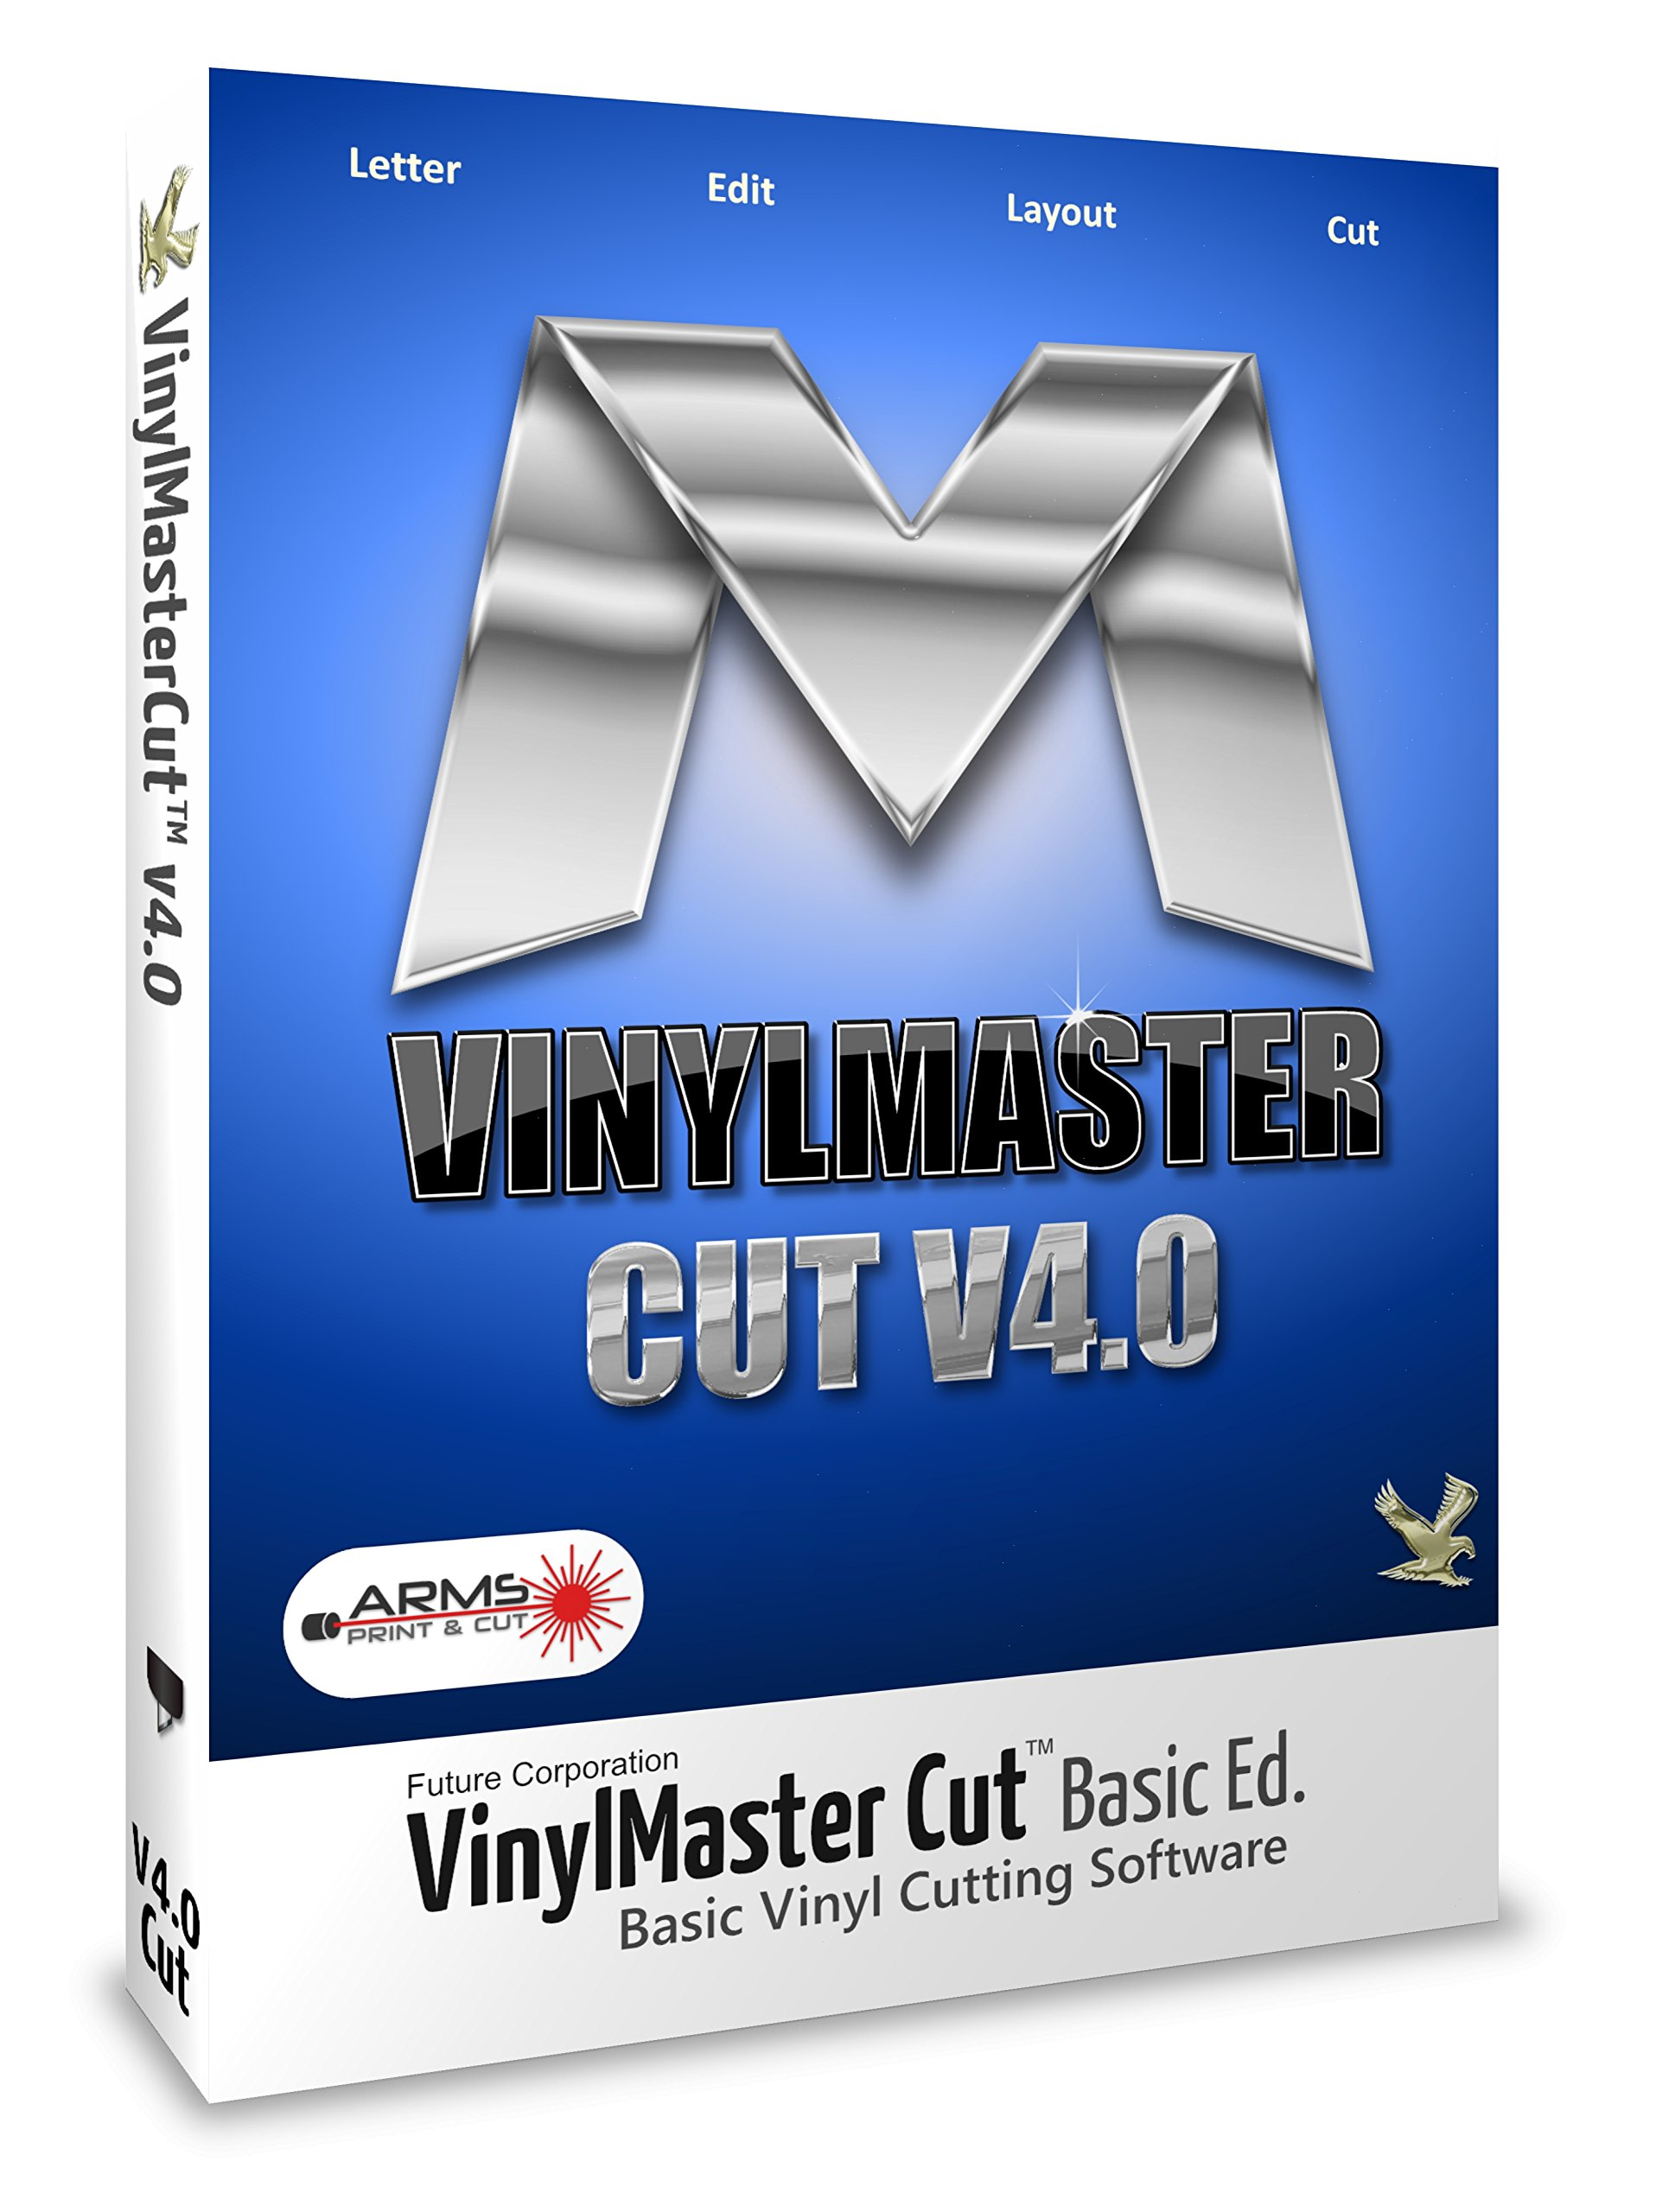 vinylmaster corte V4.0 Basic Sign Software para señal de vinilo Plotter: Amazon.es: Hogar